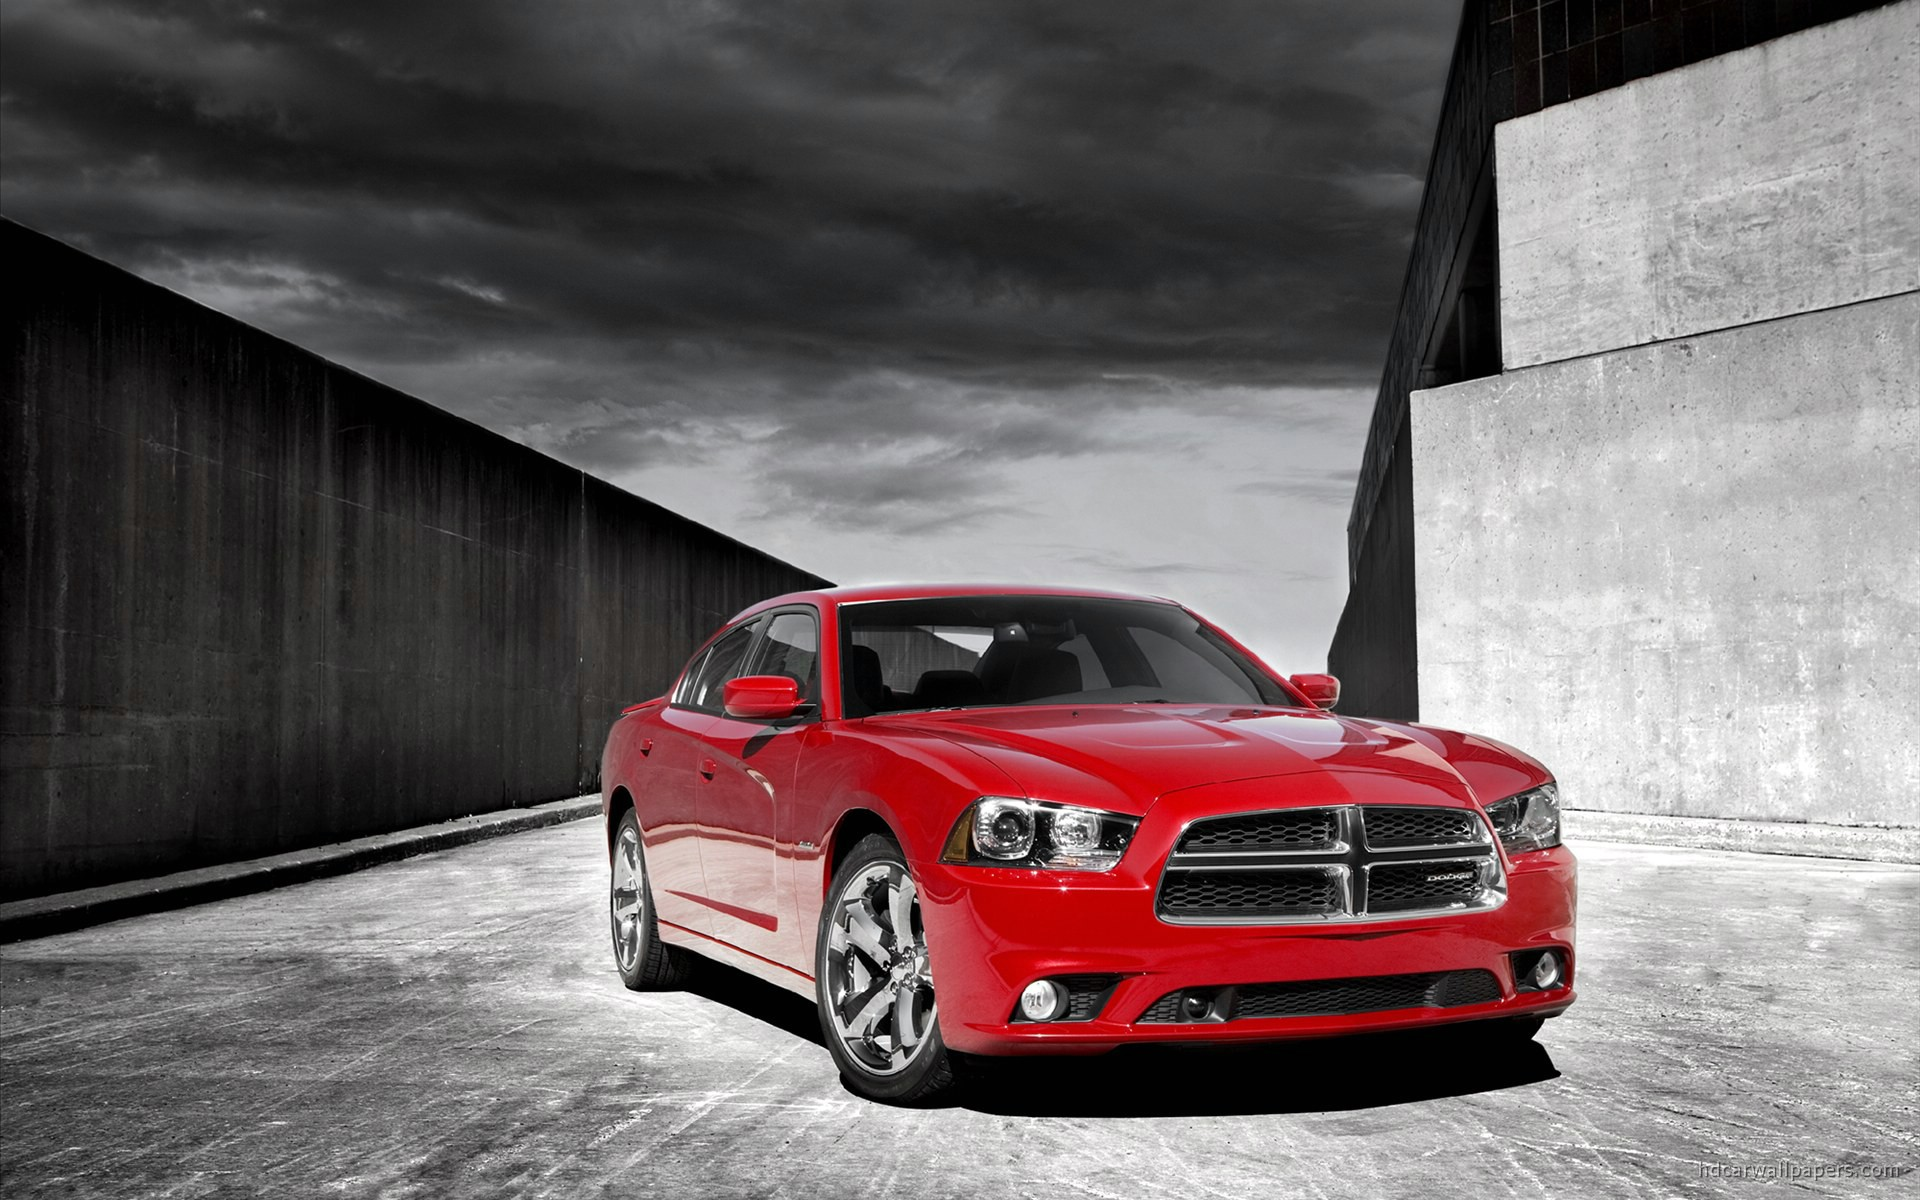 2011 Dodge Charger Wallpaper HD Car Wallpapers 1920x1200